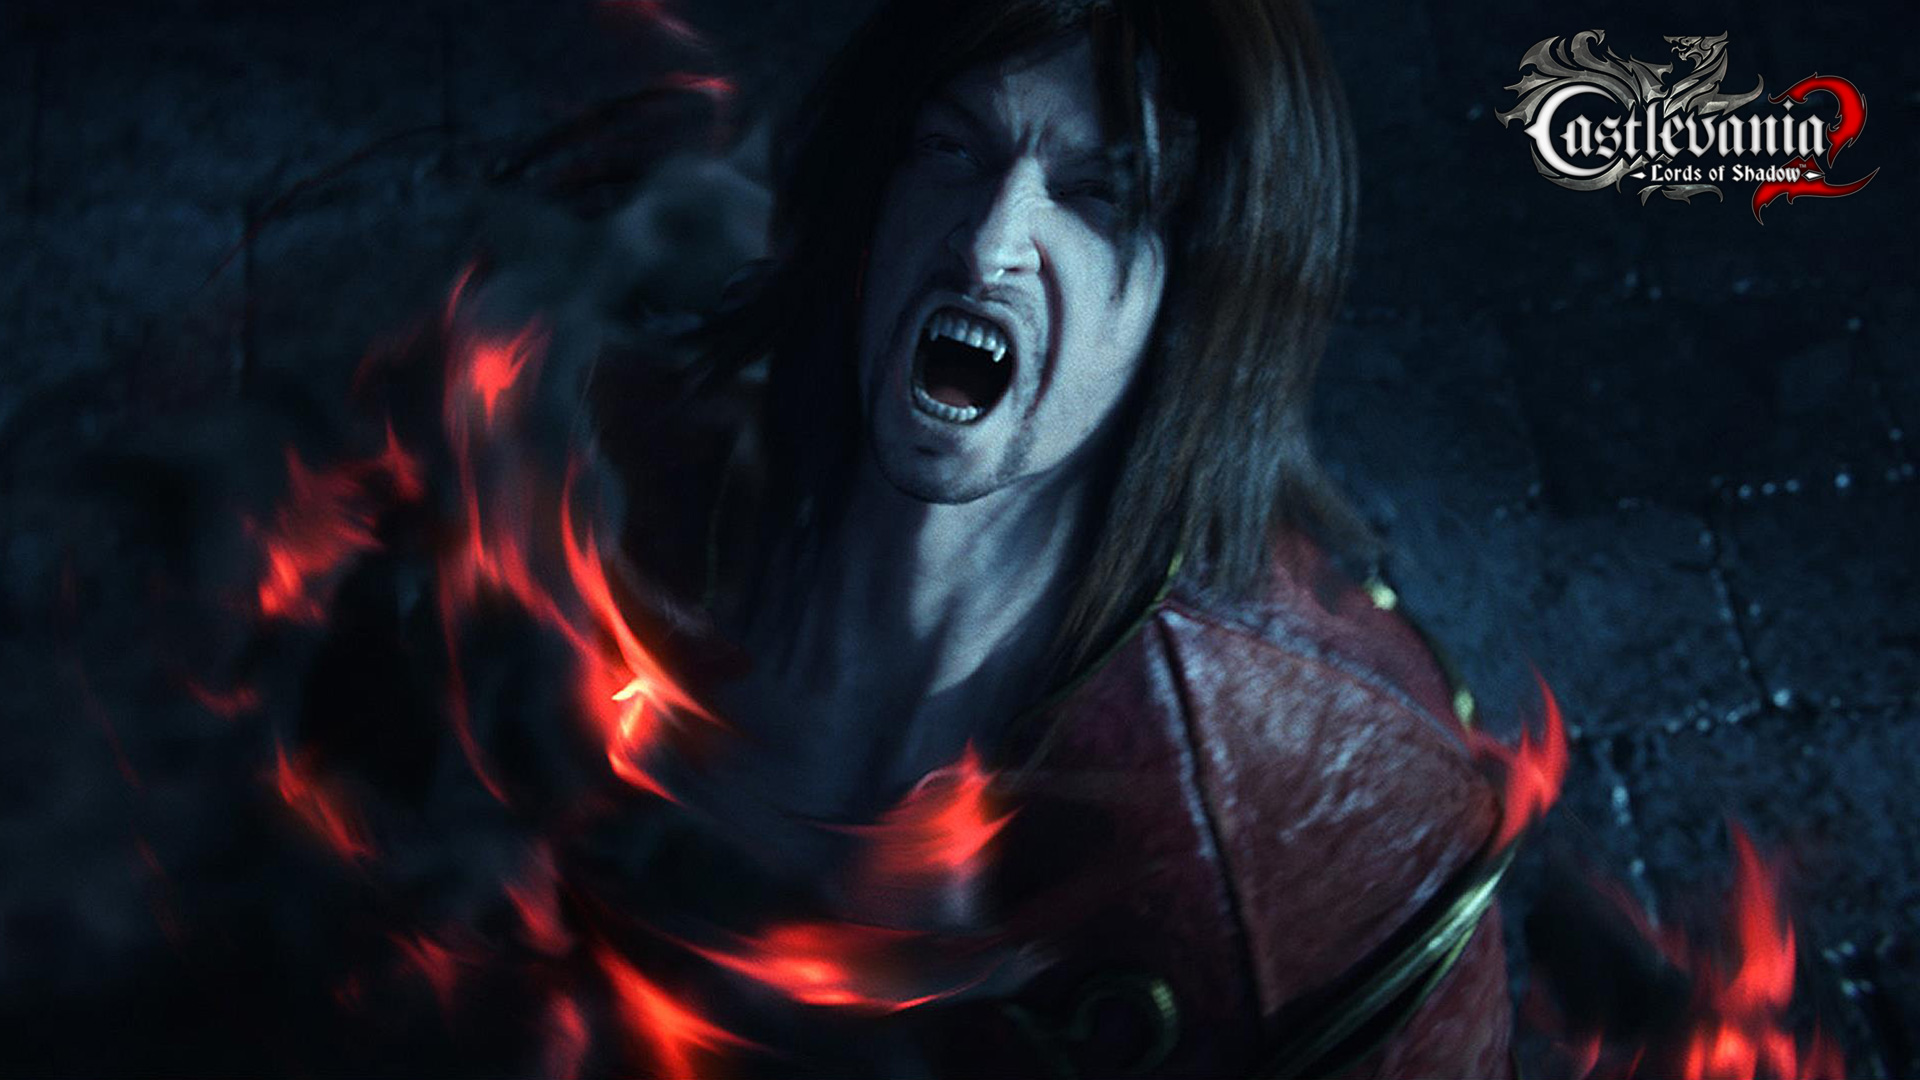 Castlevania Lords of Shadow 2 wallpaper 11